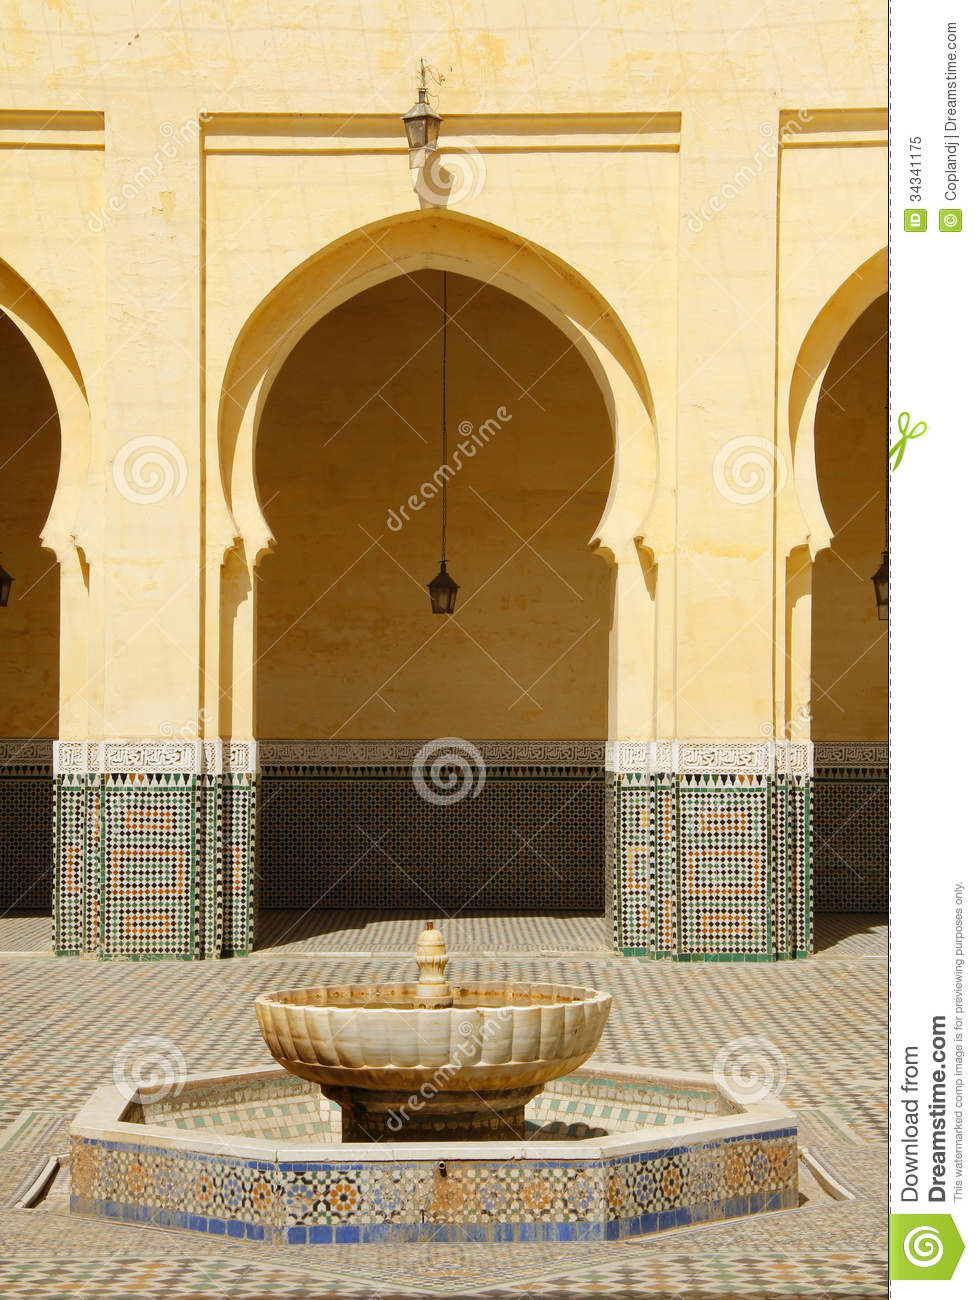 Morocco Meknes Islamic Arches And Patio Royalty Free